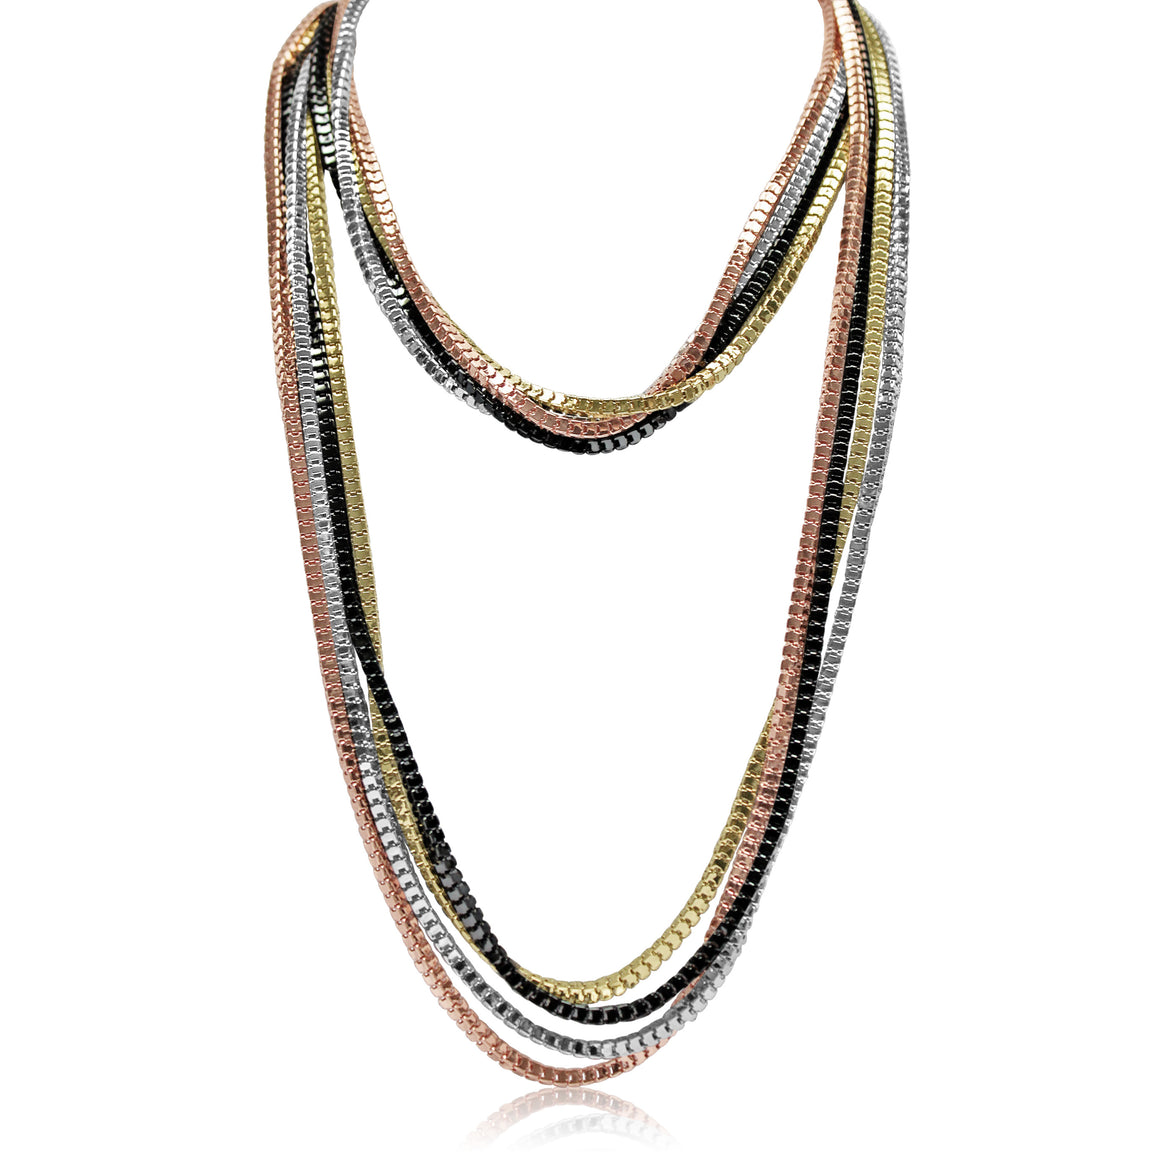 4 Colour Chain Necklace - DELIVERY EARLY JULY